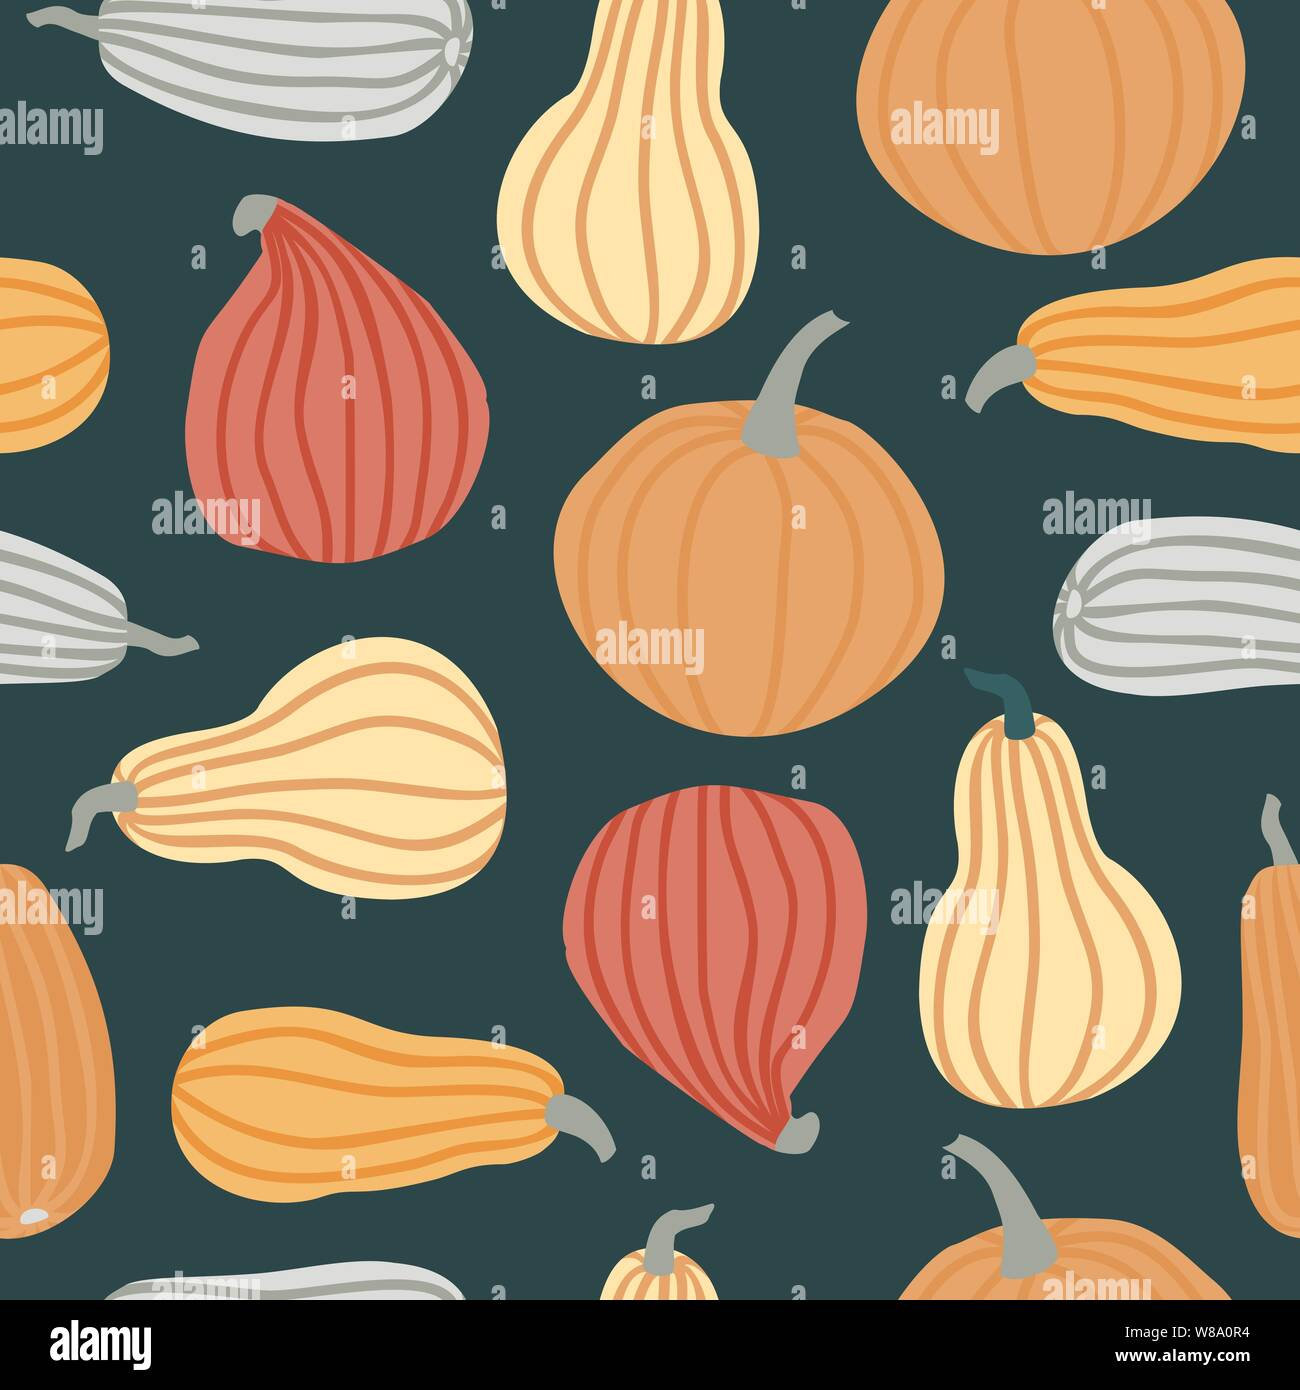 Hand Draw Pumpkin Seamless Pattern In Simple Doodle Style